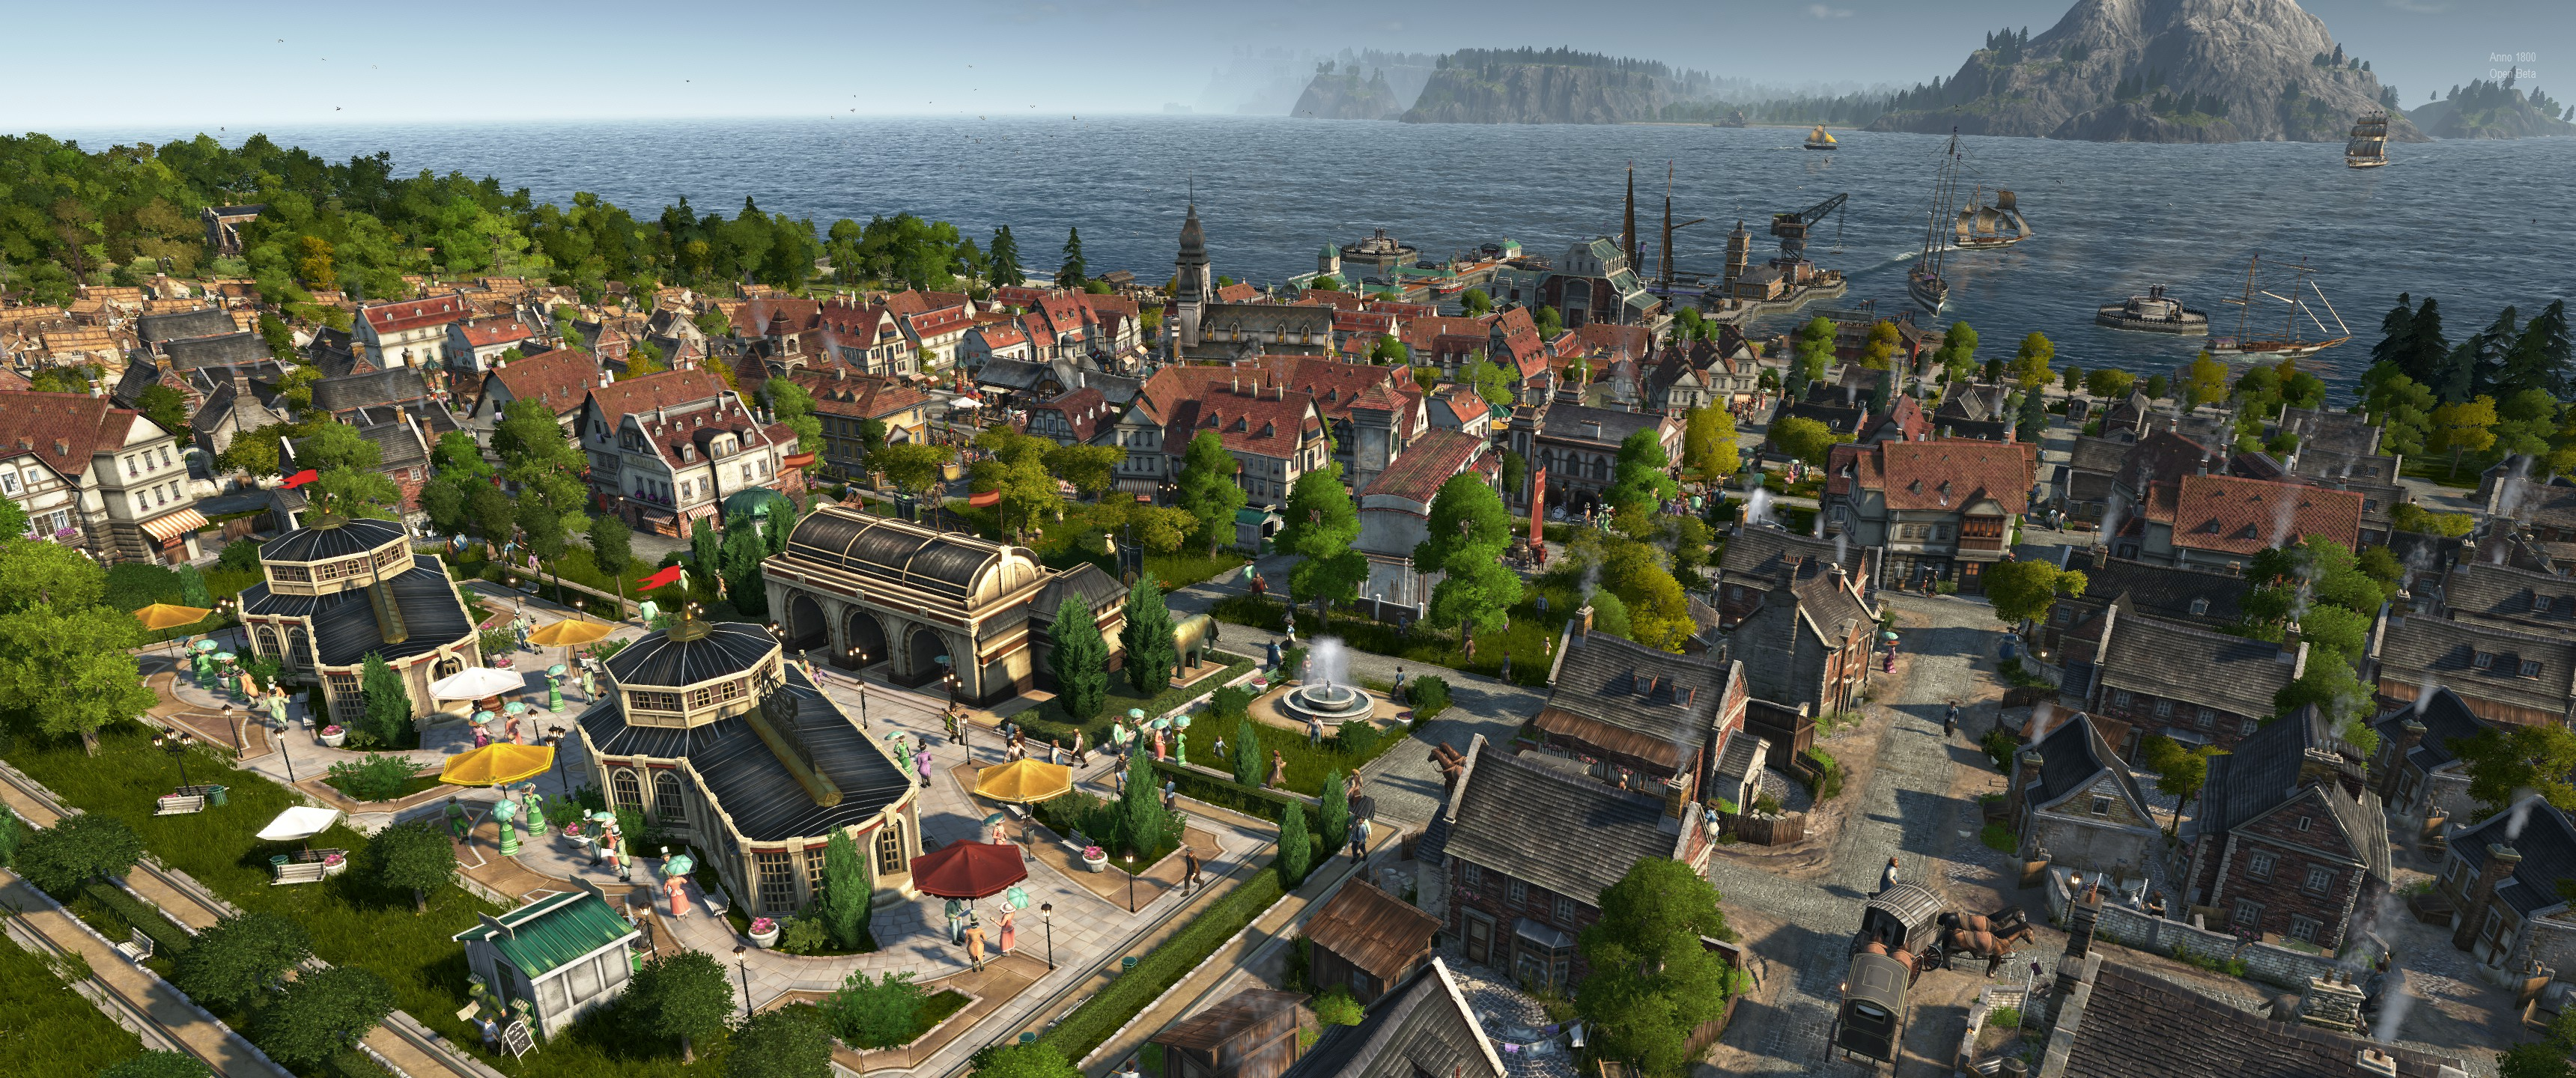 Anno-1800-Open-Beta2019-4-13-3-56-32